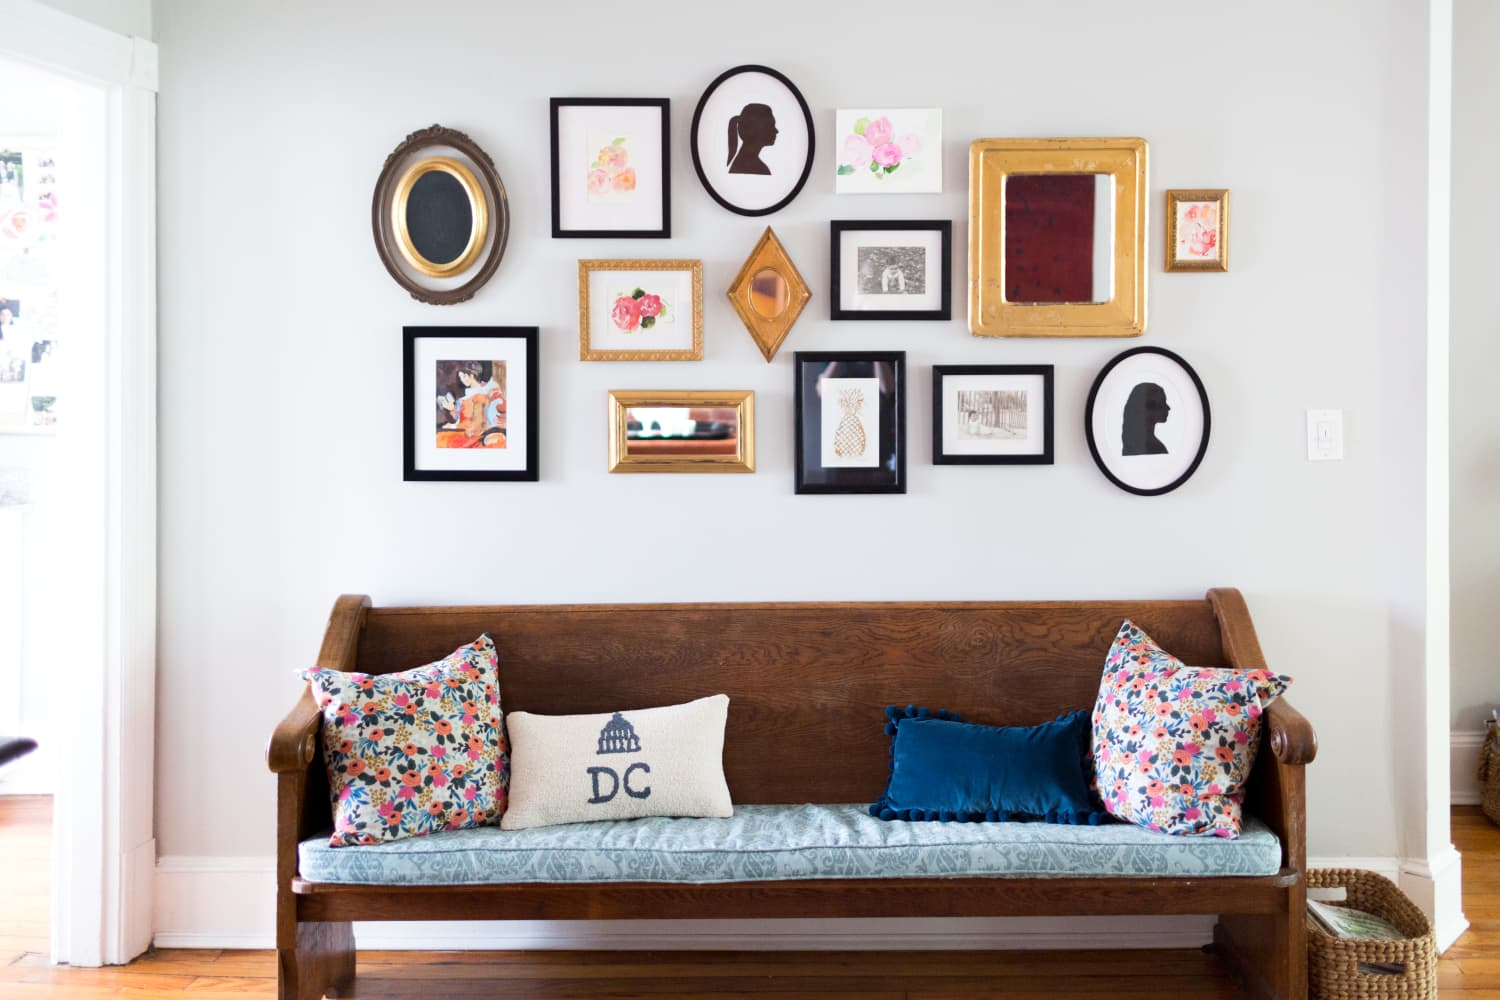 This $7 Renter-Friendly Amazon Find Lets Me Decorate My Walls Without Ruining Them